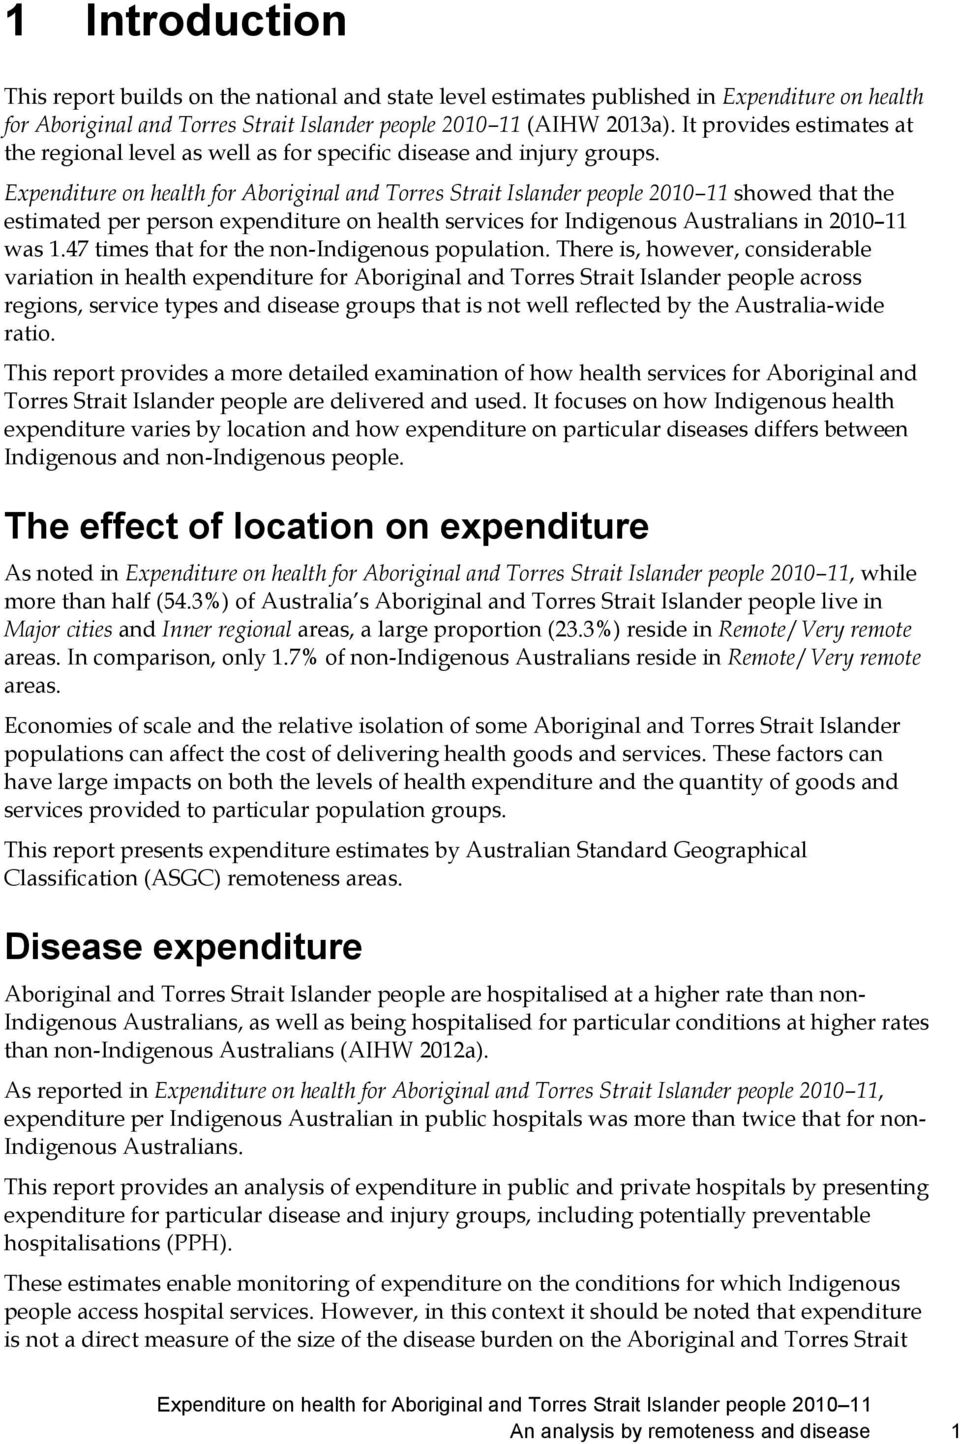 Expenditure on health for Aboriginal and Torres Strait Islander people 2010 11 showed that the estimated per person expenditure on health services for Indigenous Australians in 2010 11 was 1.